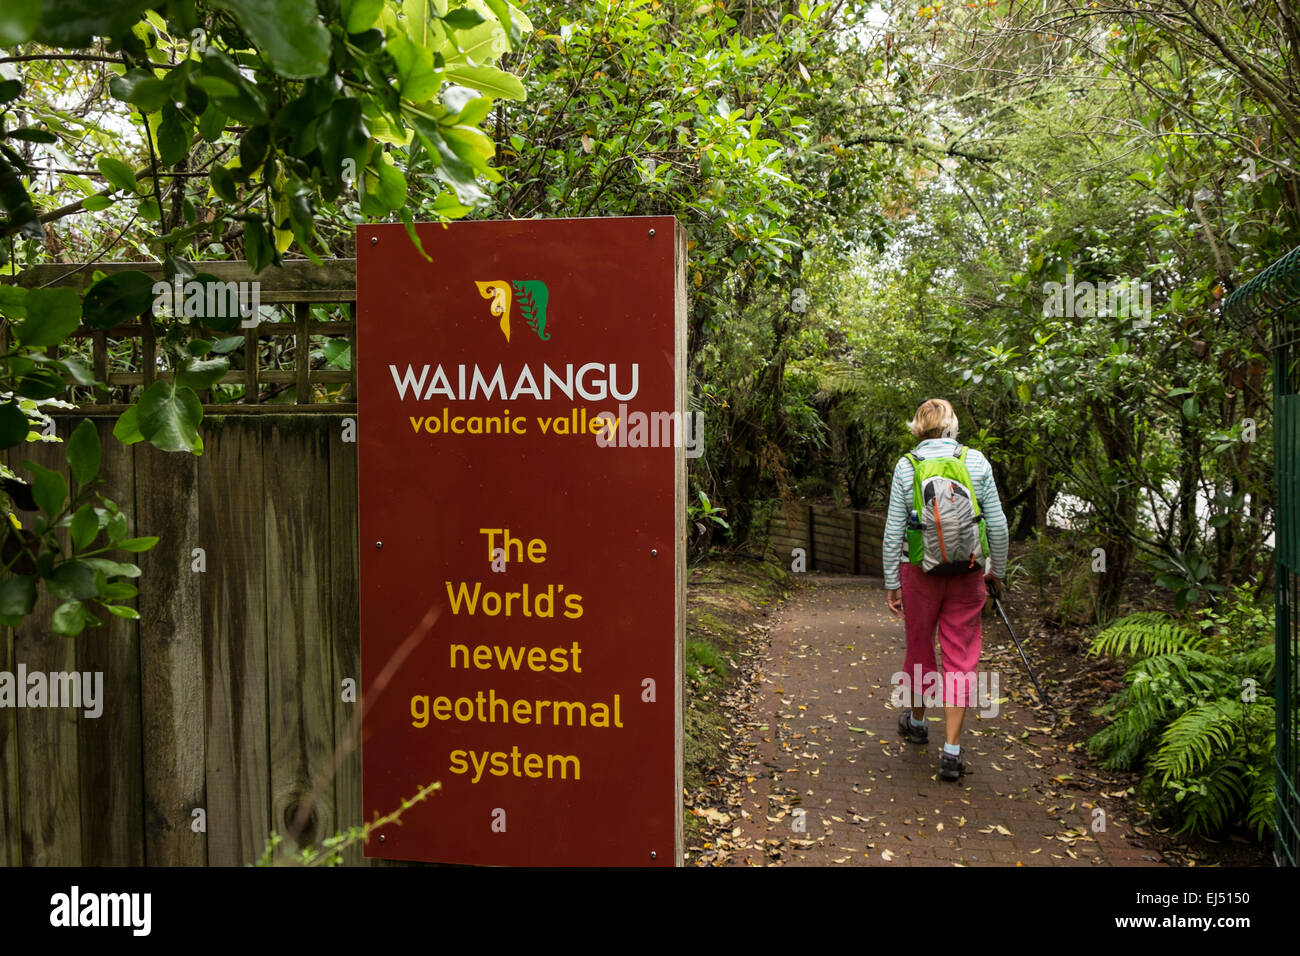 Waimangu geothermal area in New Zealand. - Stock Image